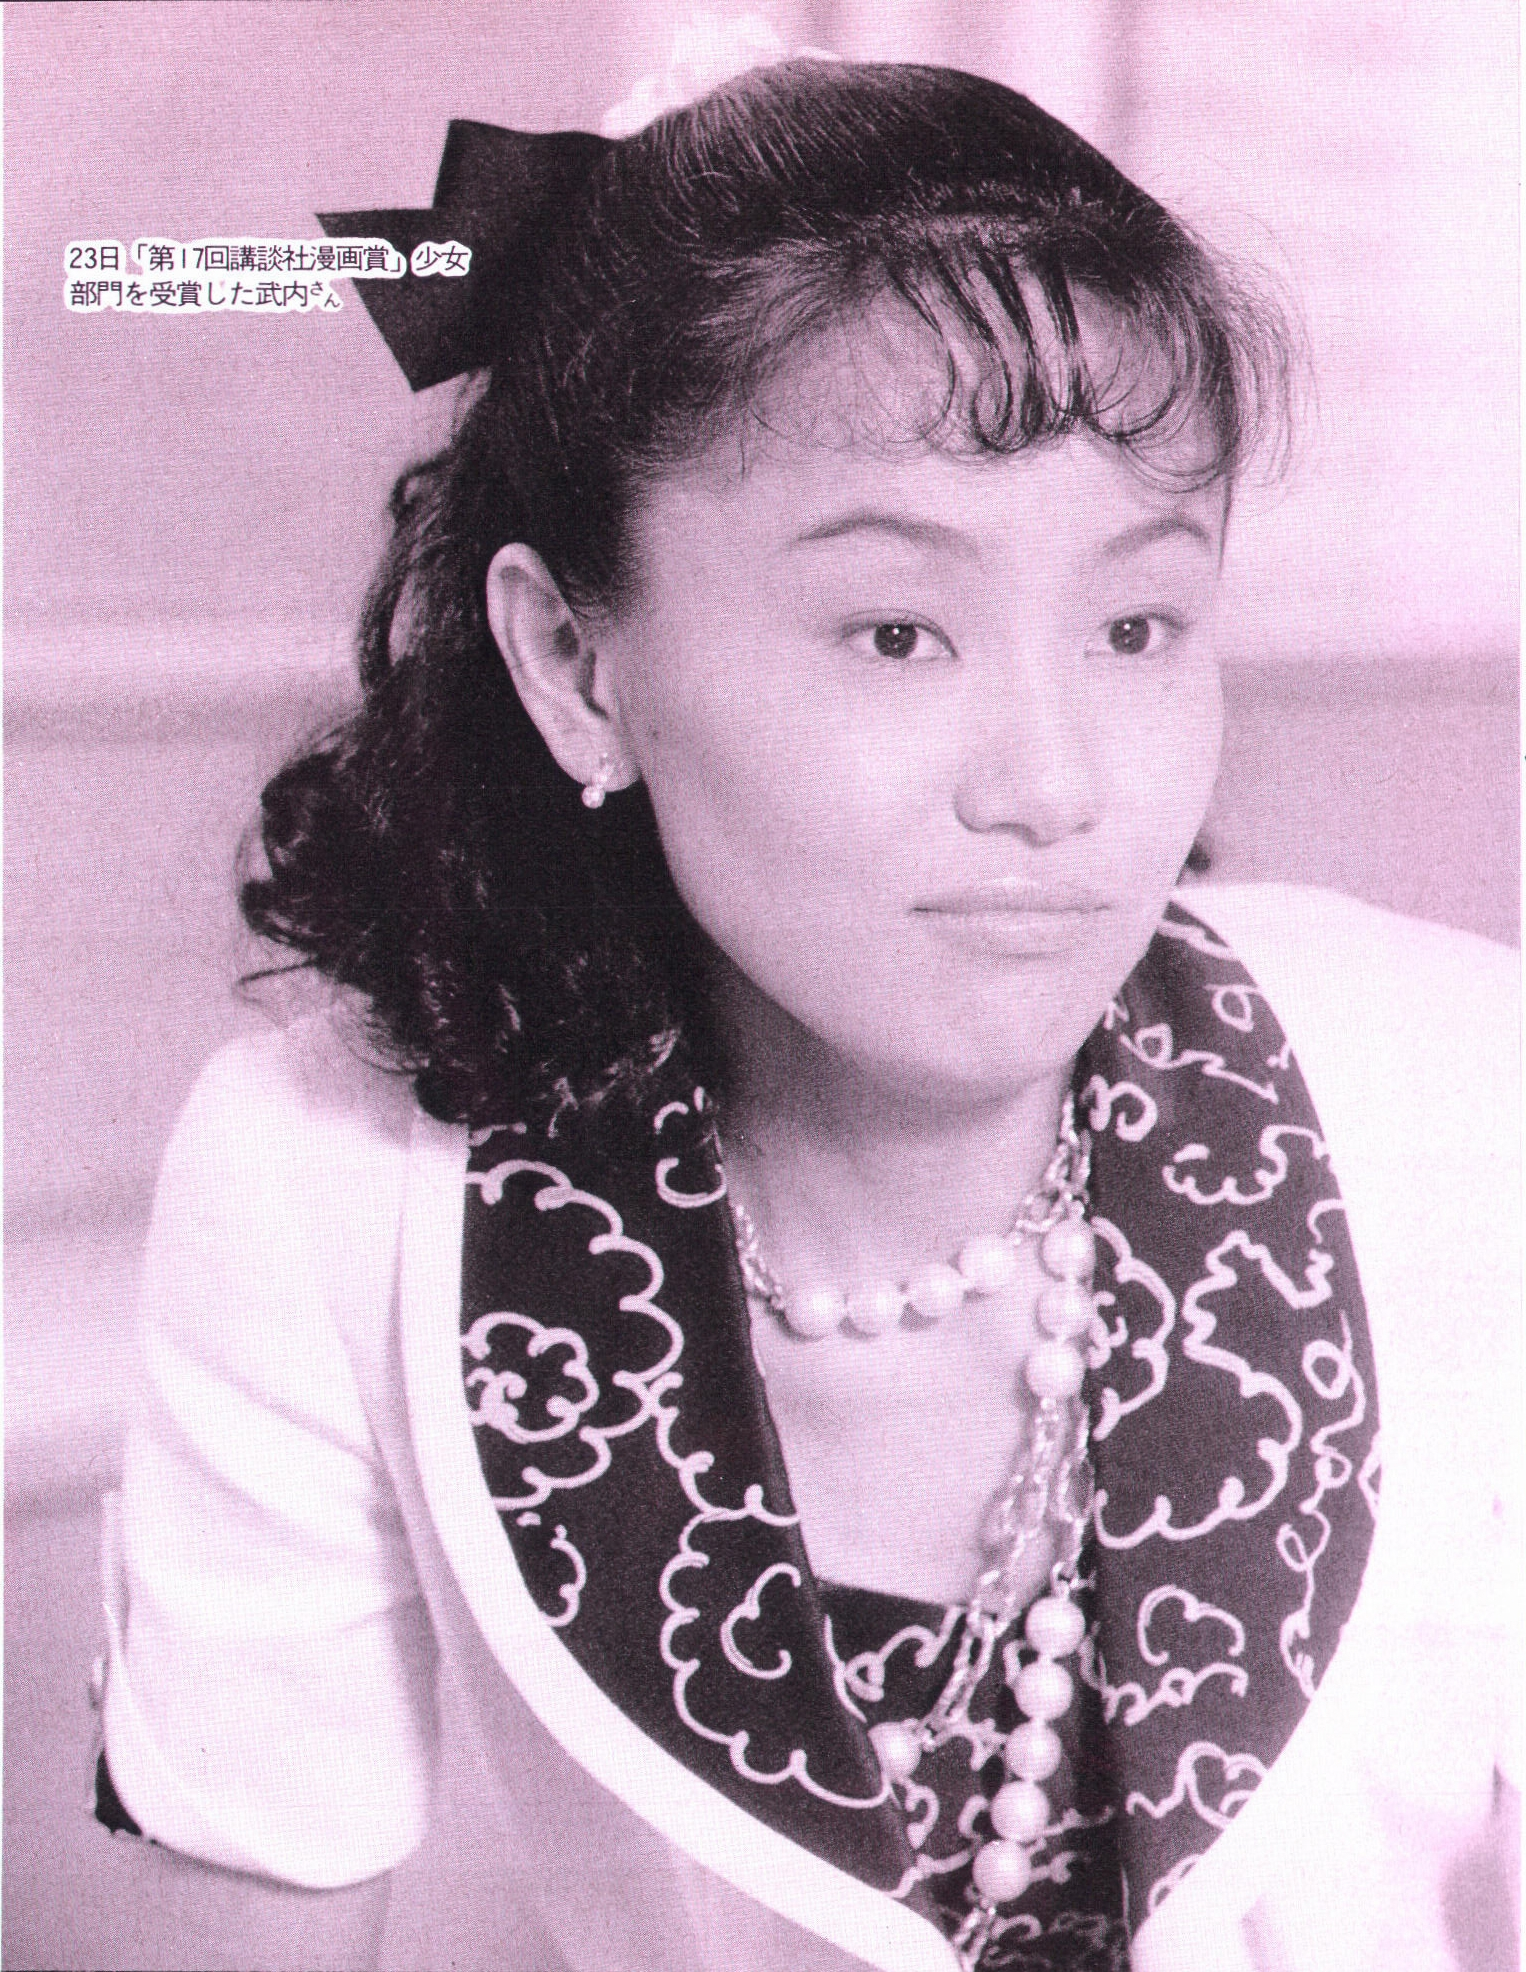 Photo of Naoko Takeuchi in Flash magazine